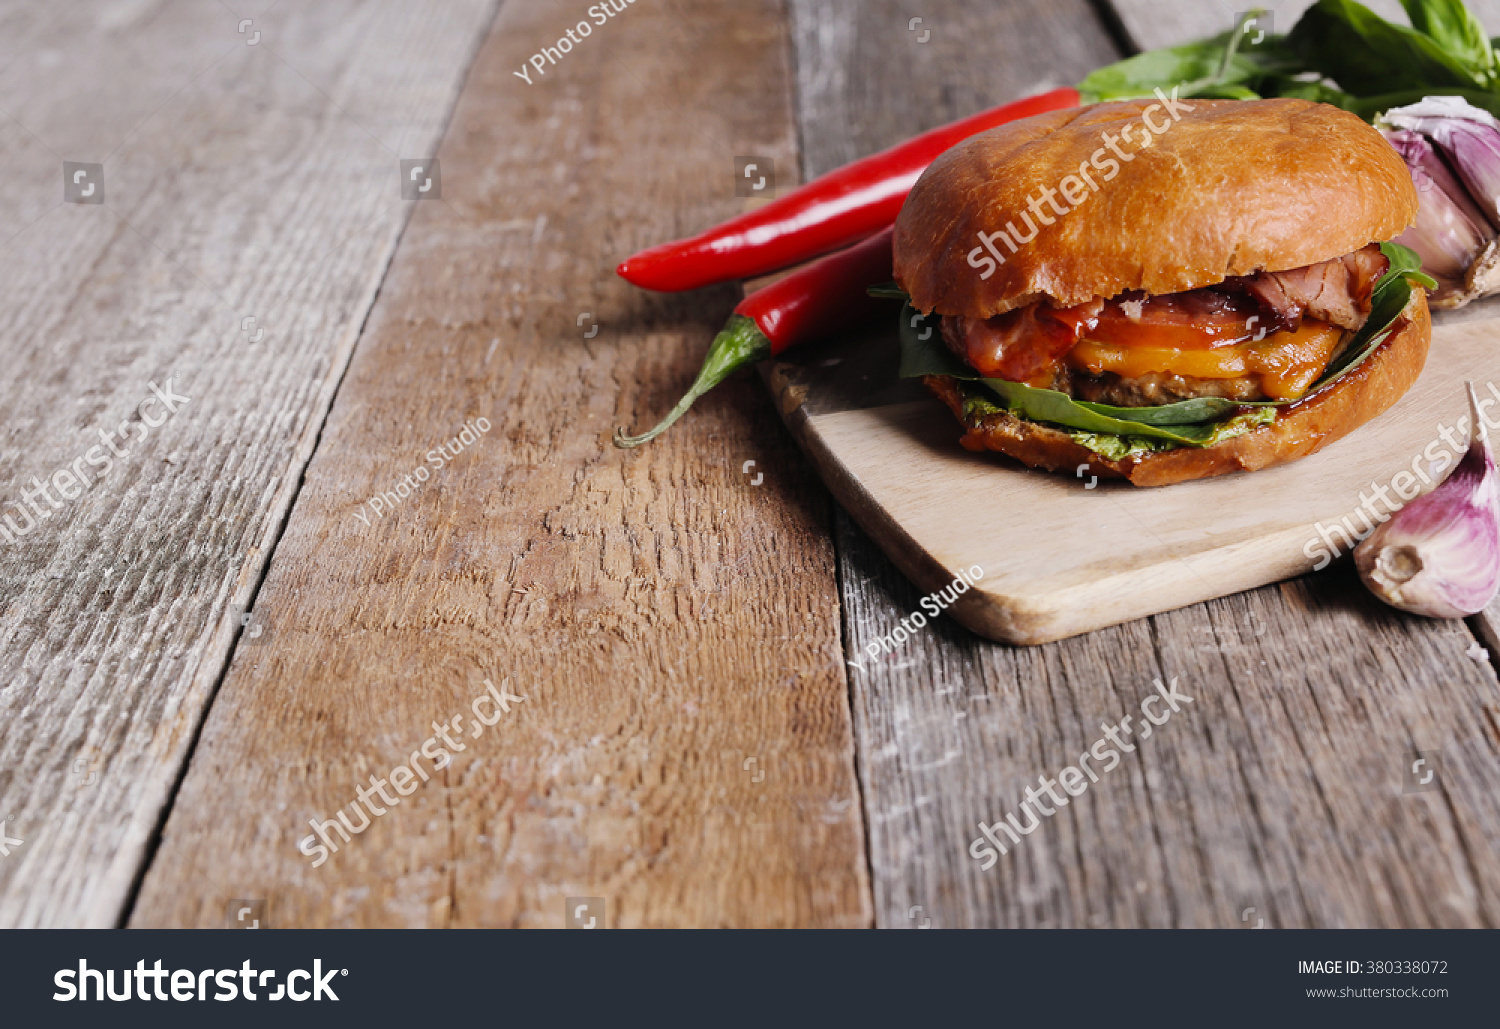 Delicious burger on table stock photo 380338072 shutterstock for Table burger